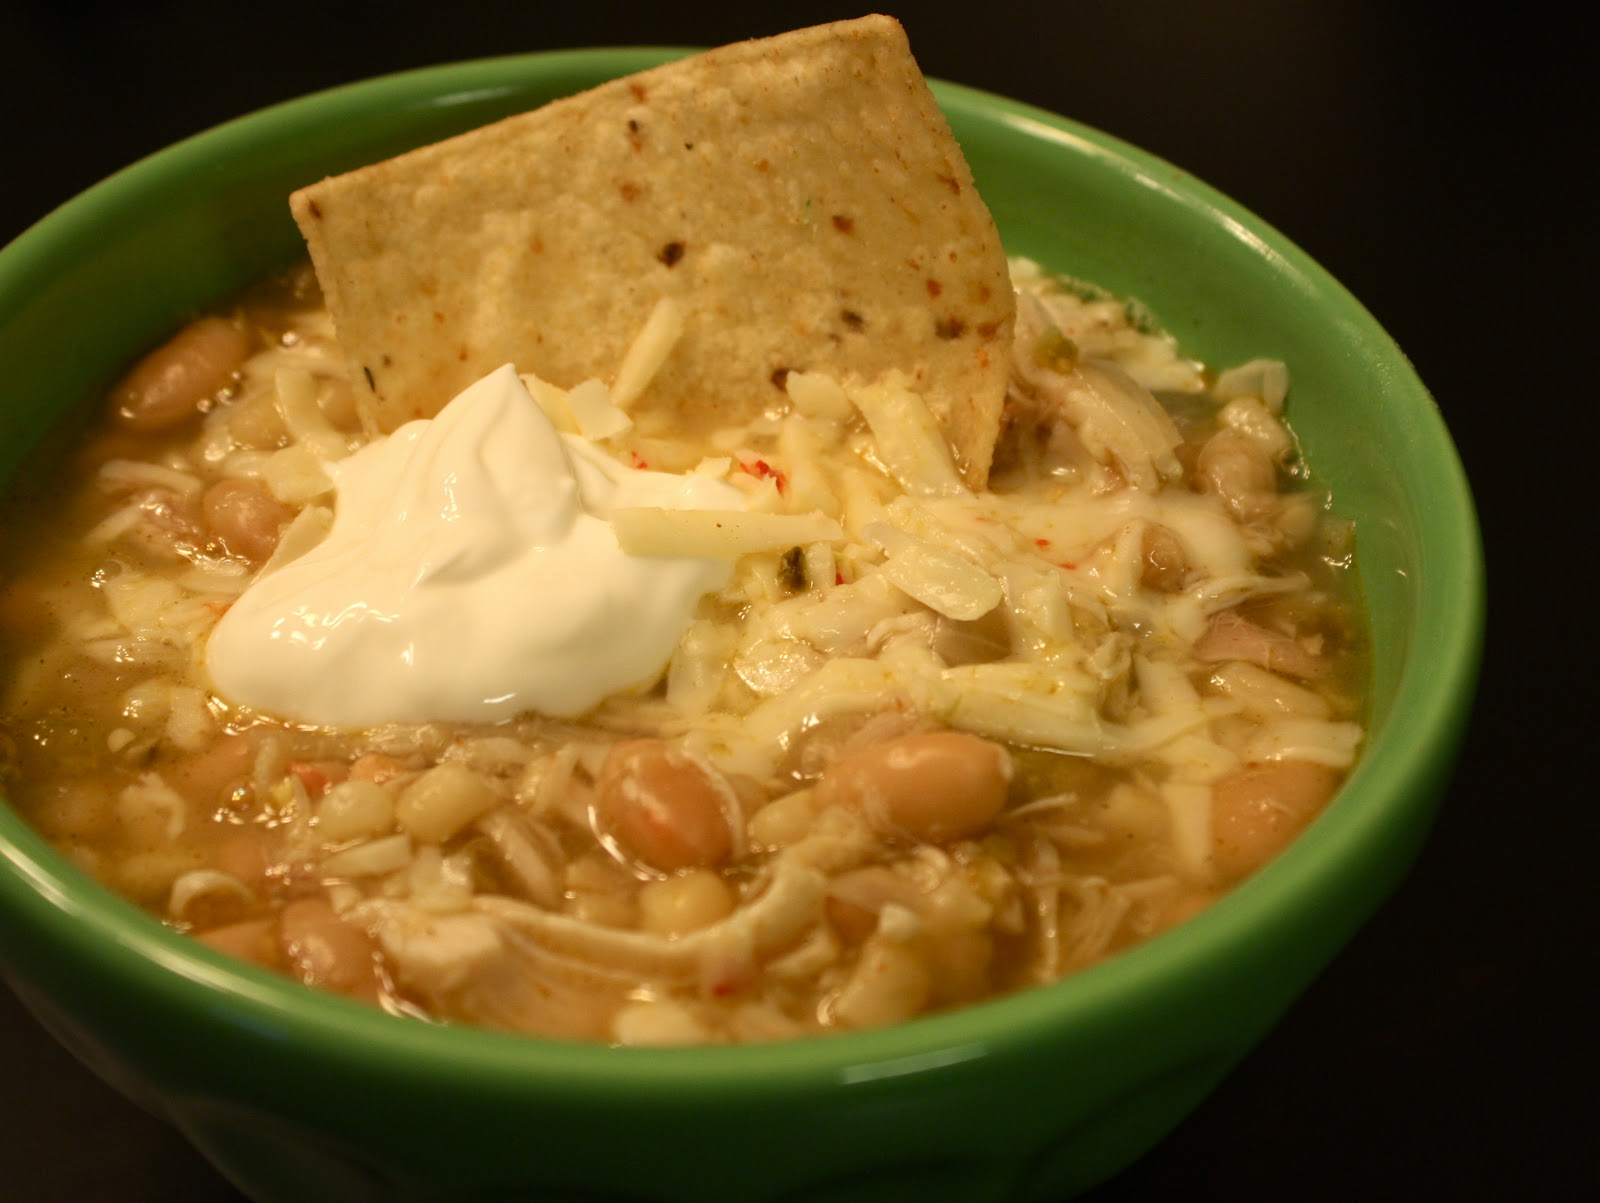 Kuki's Kookbook: White Bean and Chicken Chili